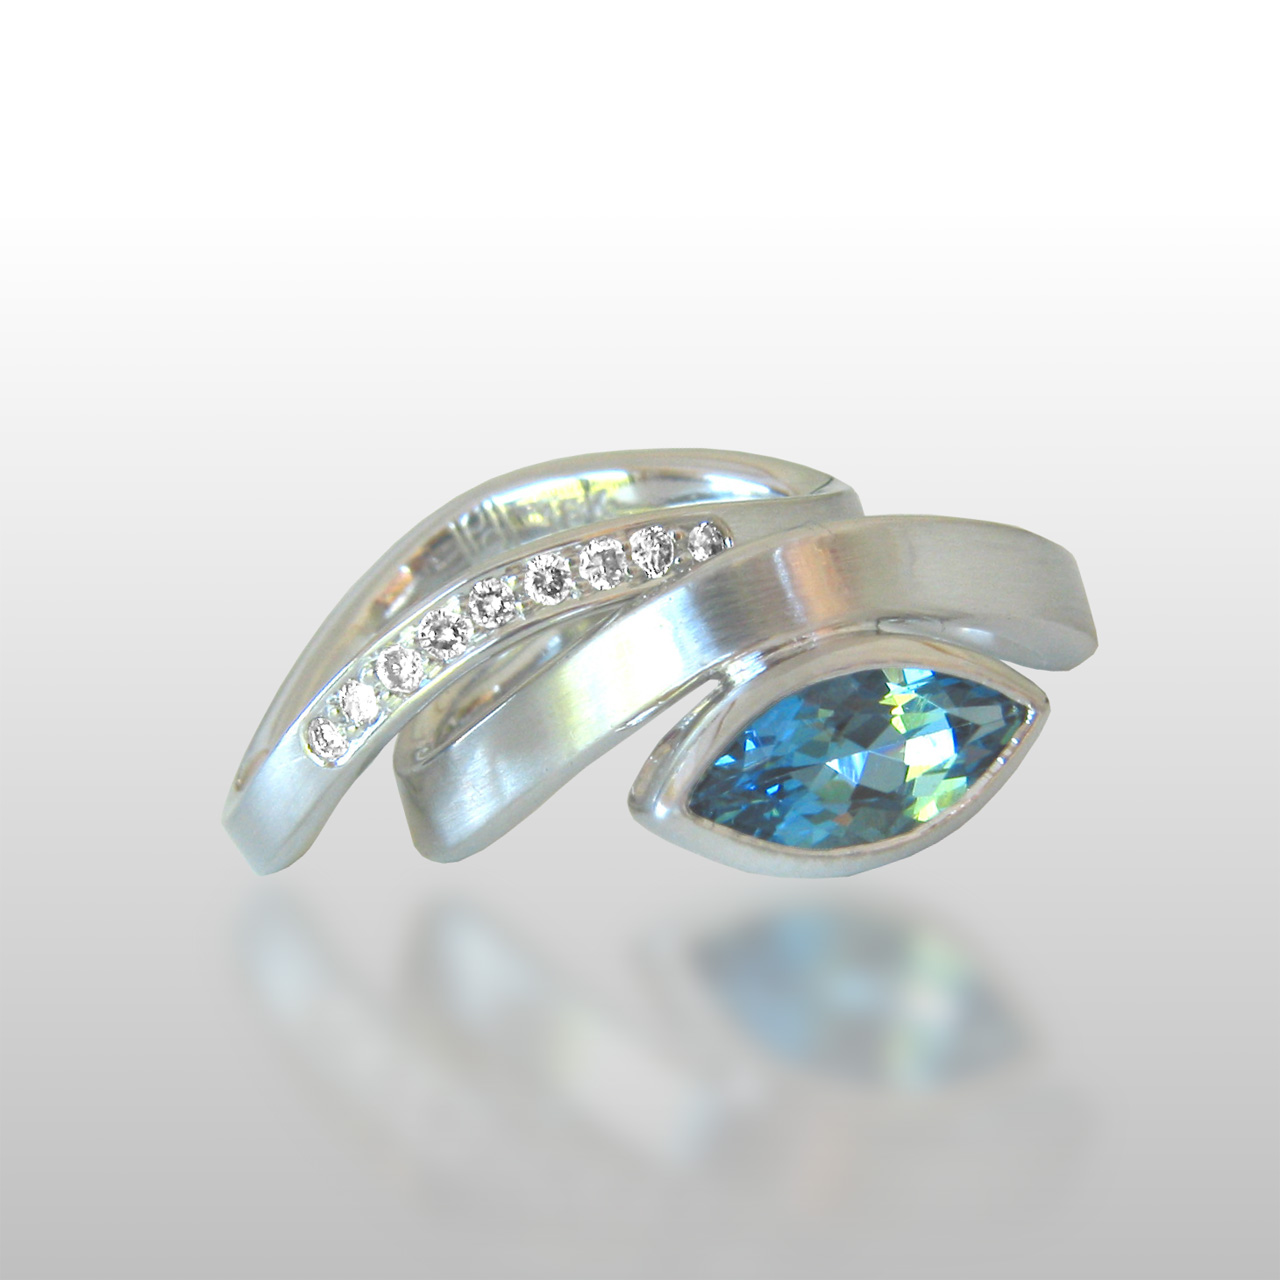 White gold ring set with a set of small diamonds and one large aquamarine stone cut into a unique shape